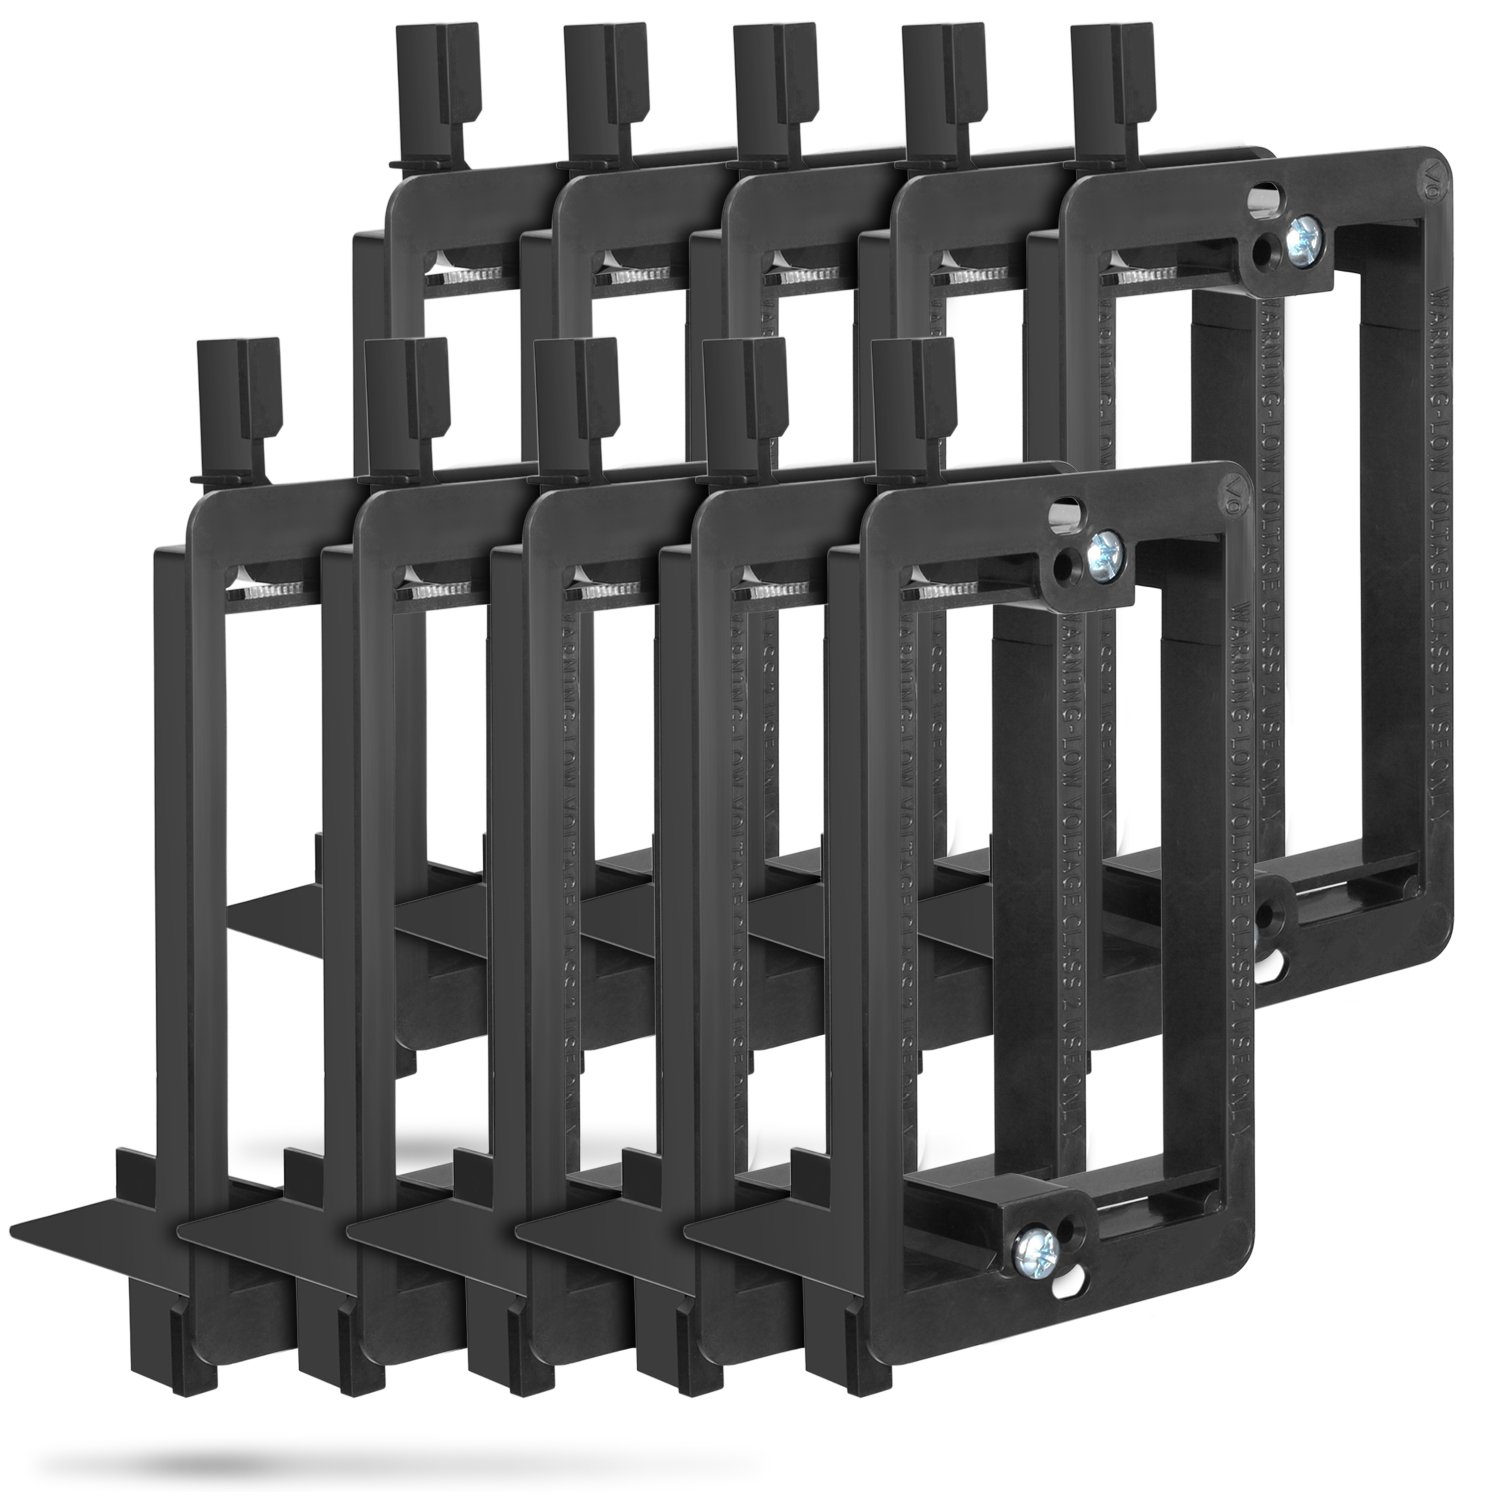 Low Voltage Mounting Bracket (1 Gang, 10 Pack), Fosmon Low Voltage Mounting Bracket [Mounting Screws Included] for Telephone Wires, Network Cables, HDMI, Coaxial, Speaker Cables